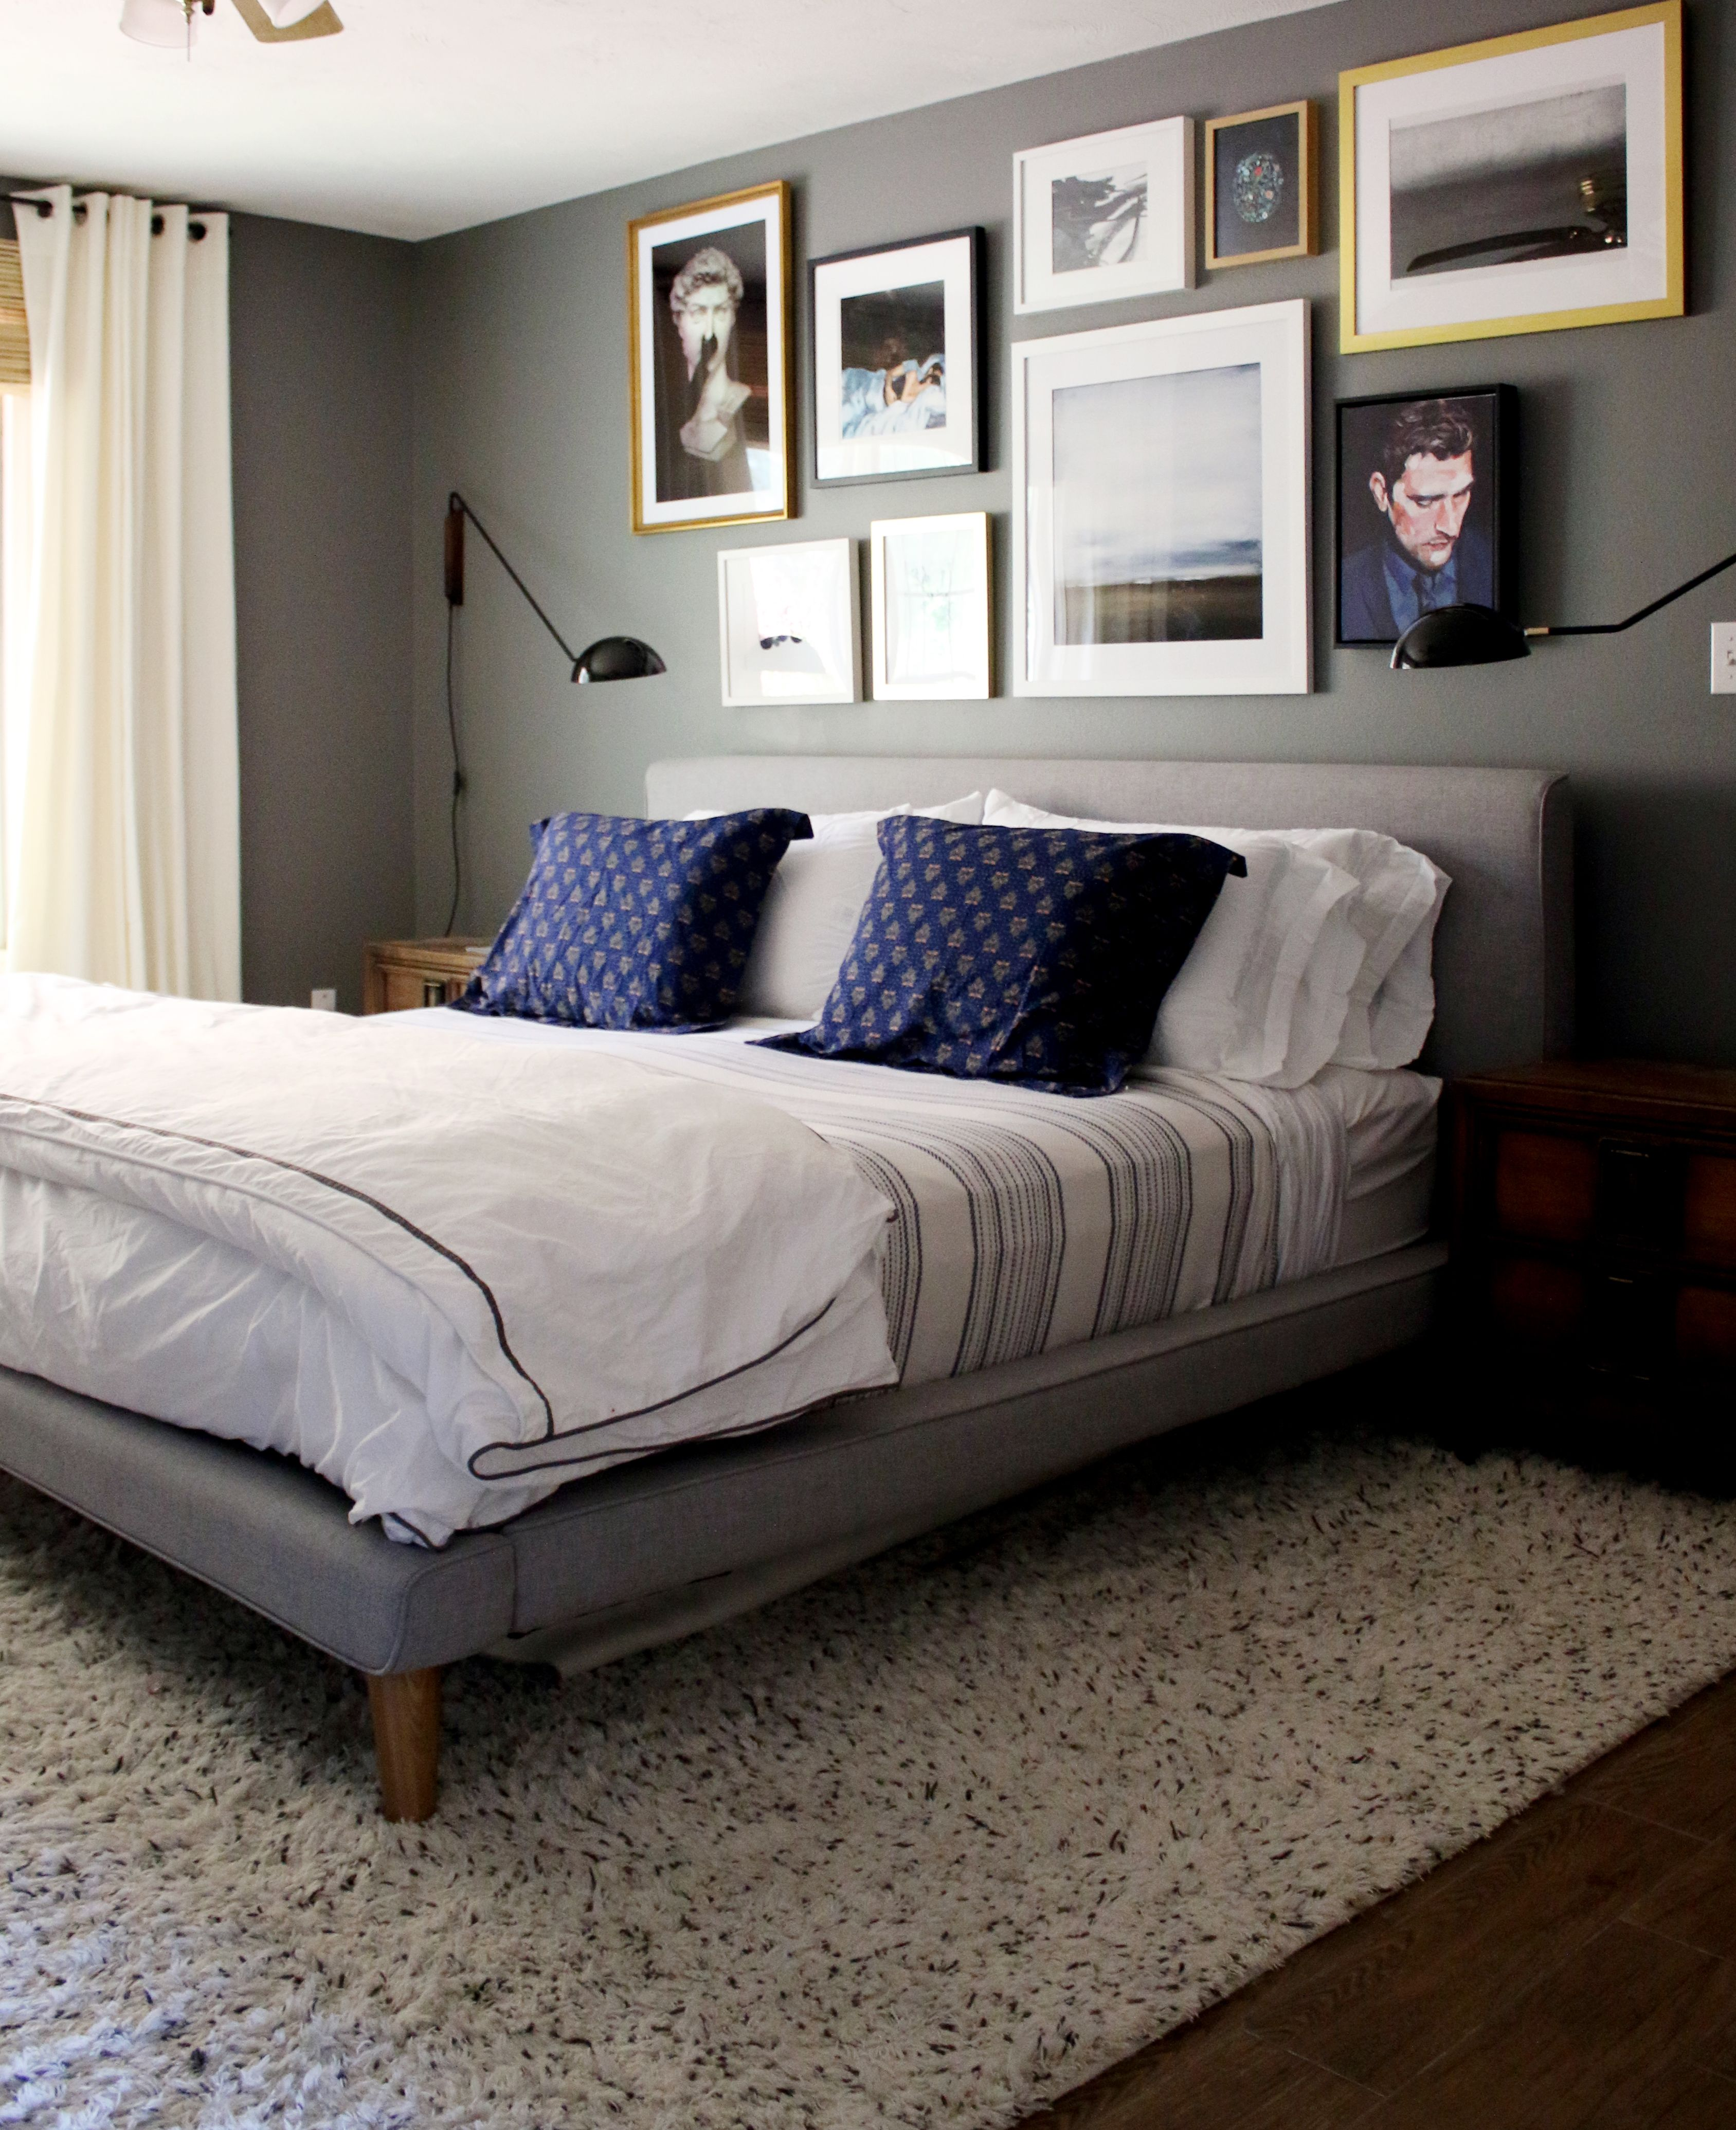 A Gallery Wall in the Master Bedroom + Tips on Creating Your Own ...